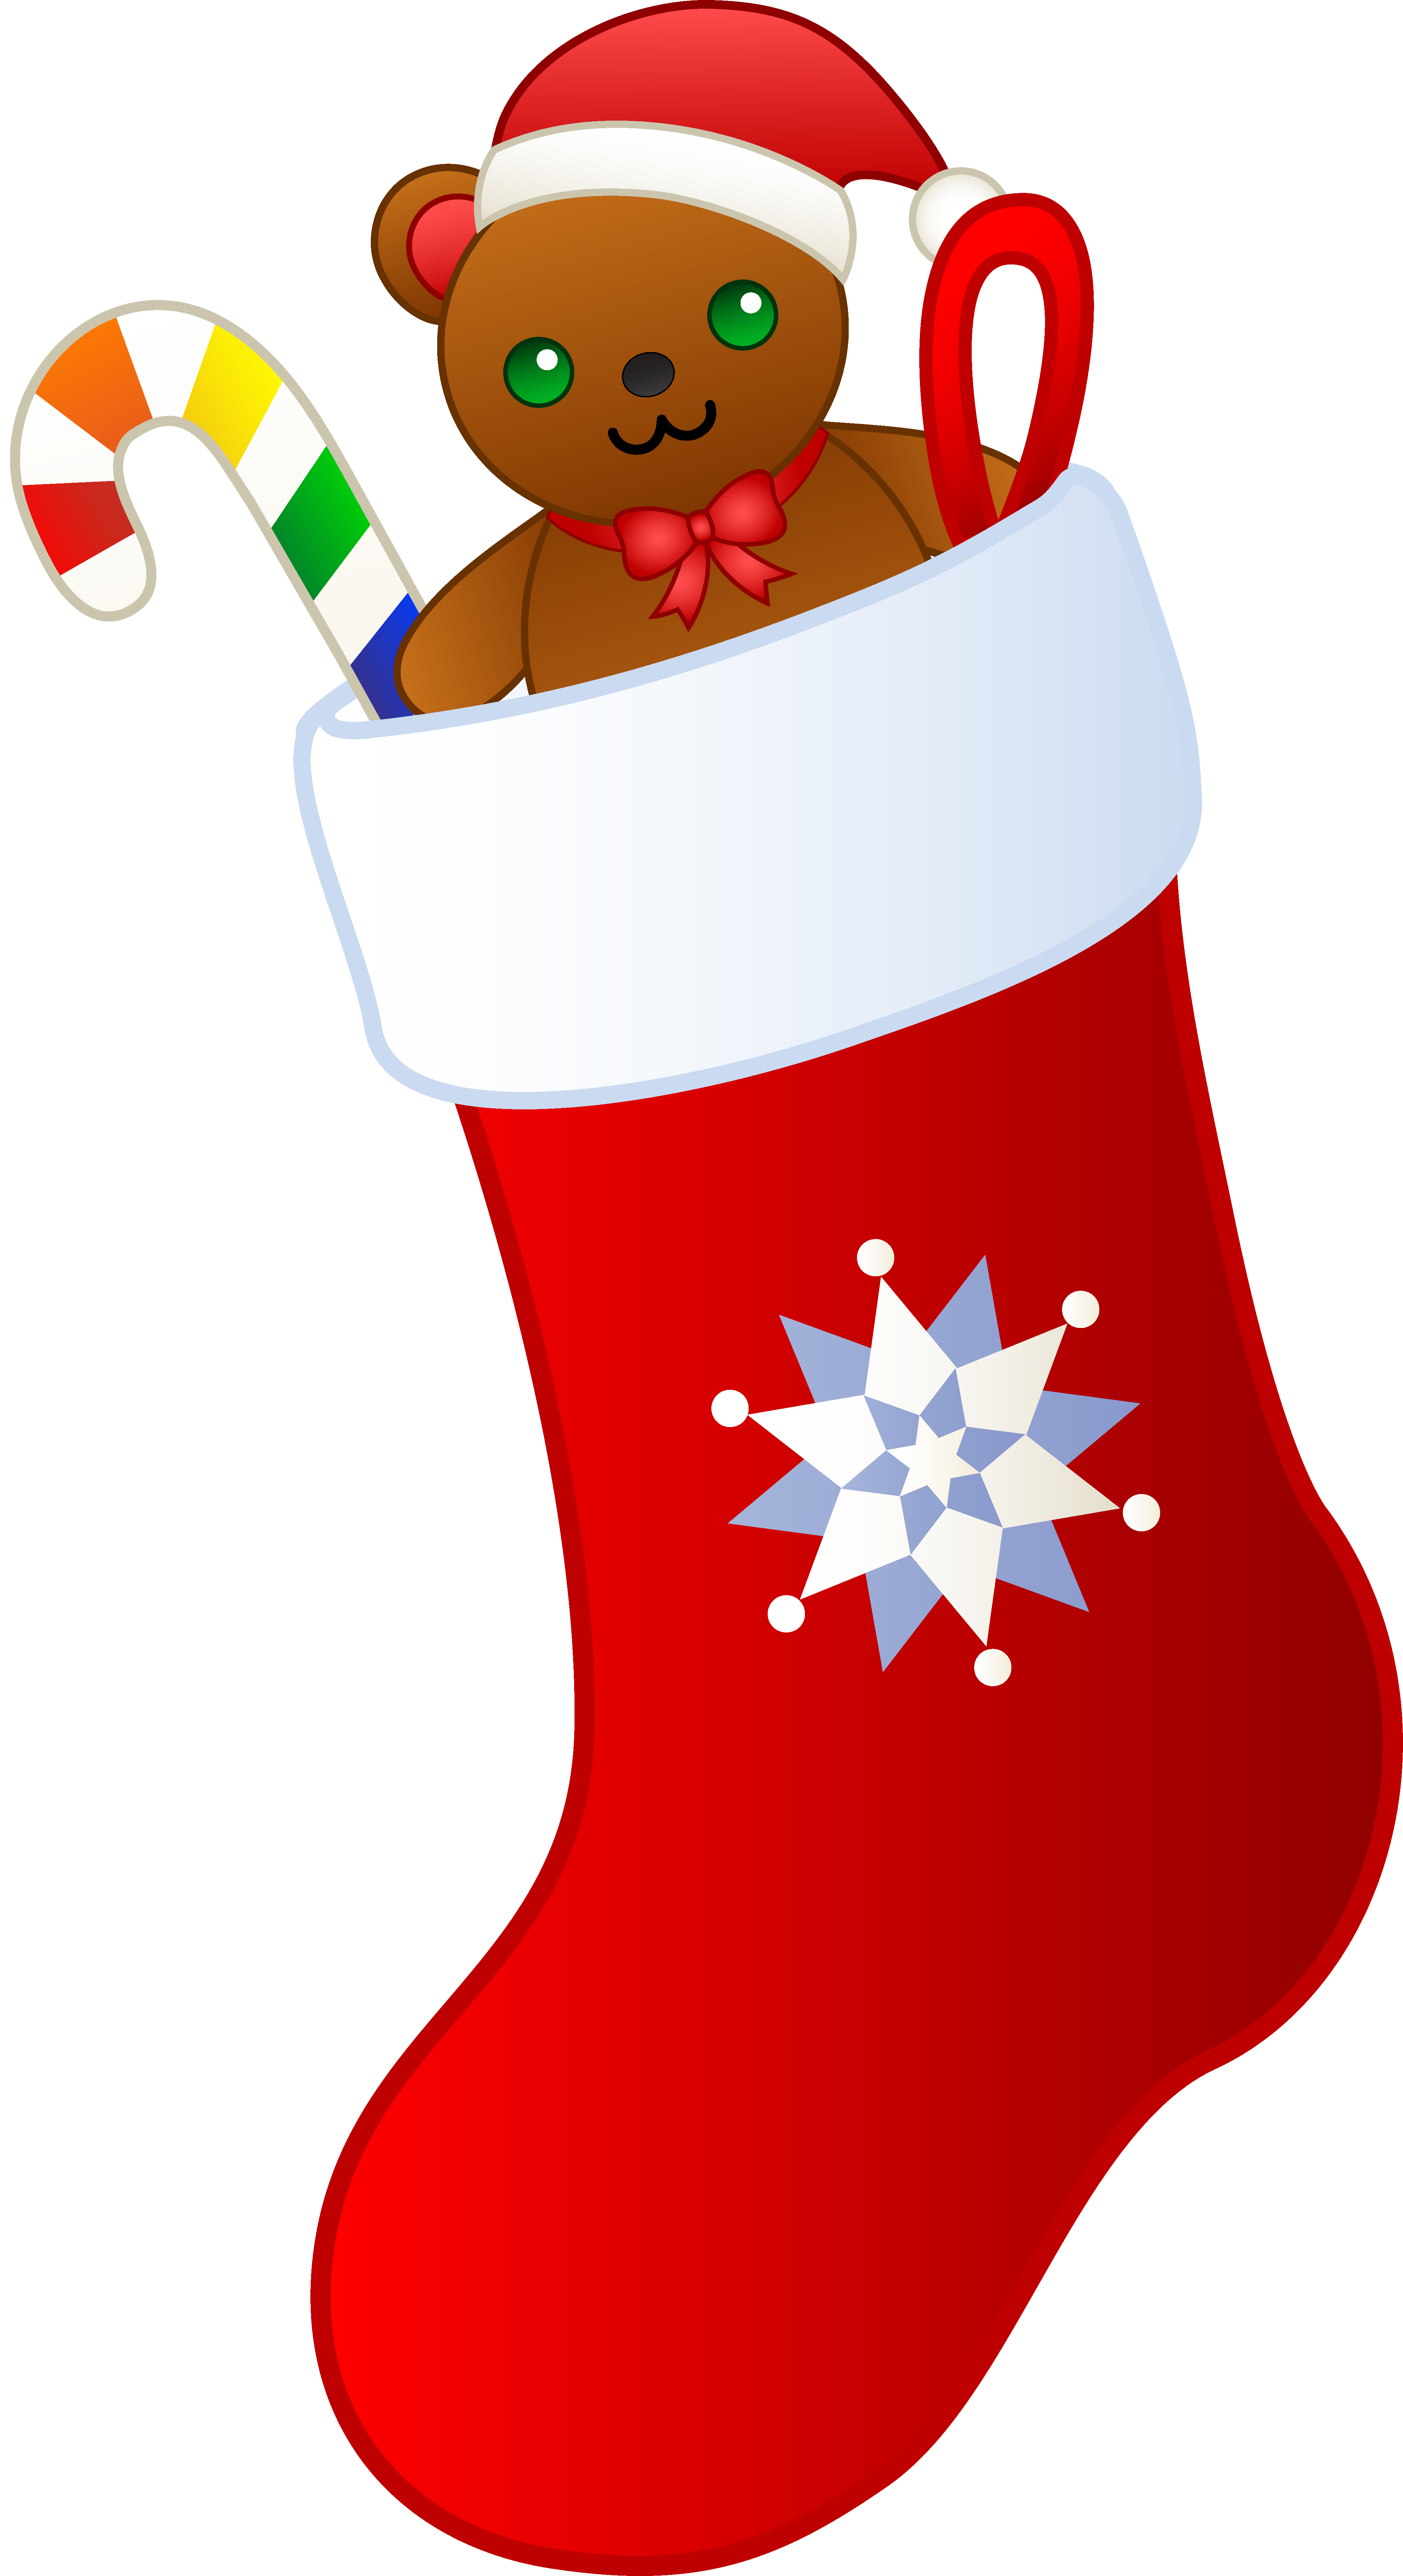 4037x7412 christmas christmas stockings happy holidays socks outstanding - Walmart Christmas Socks